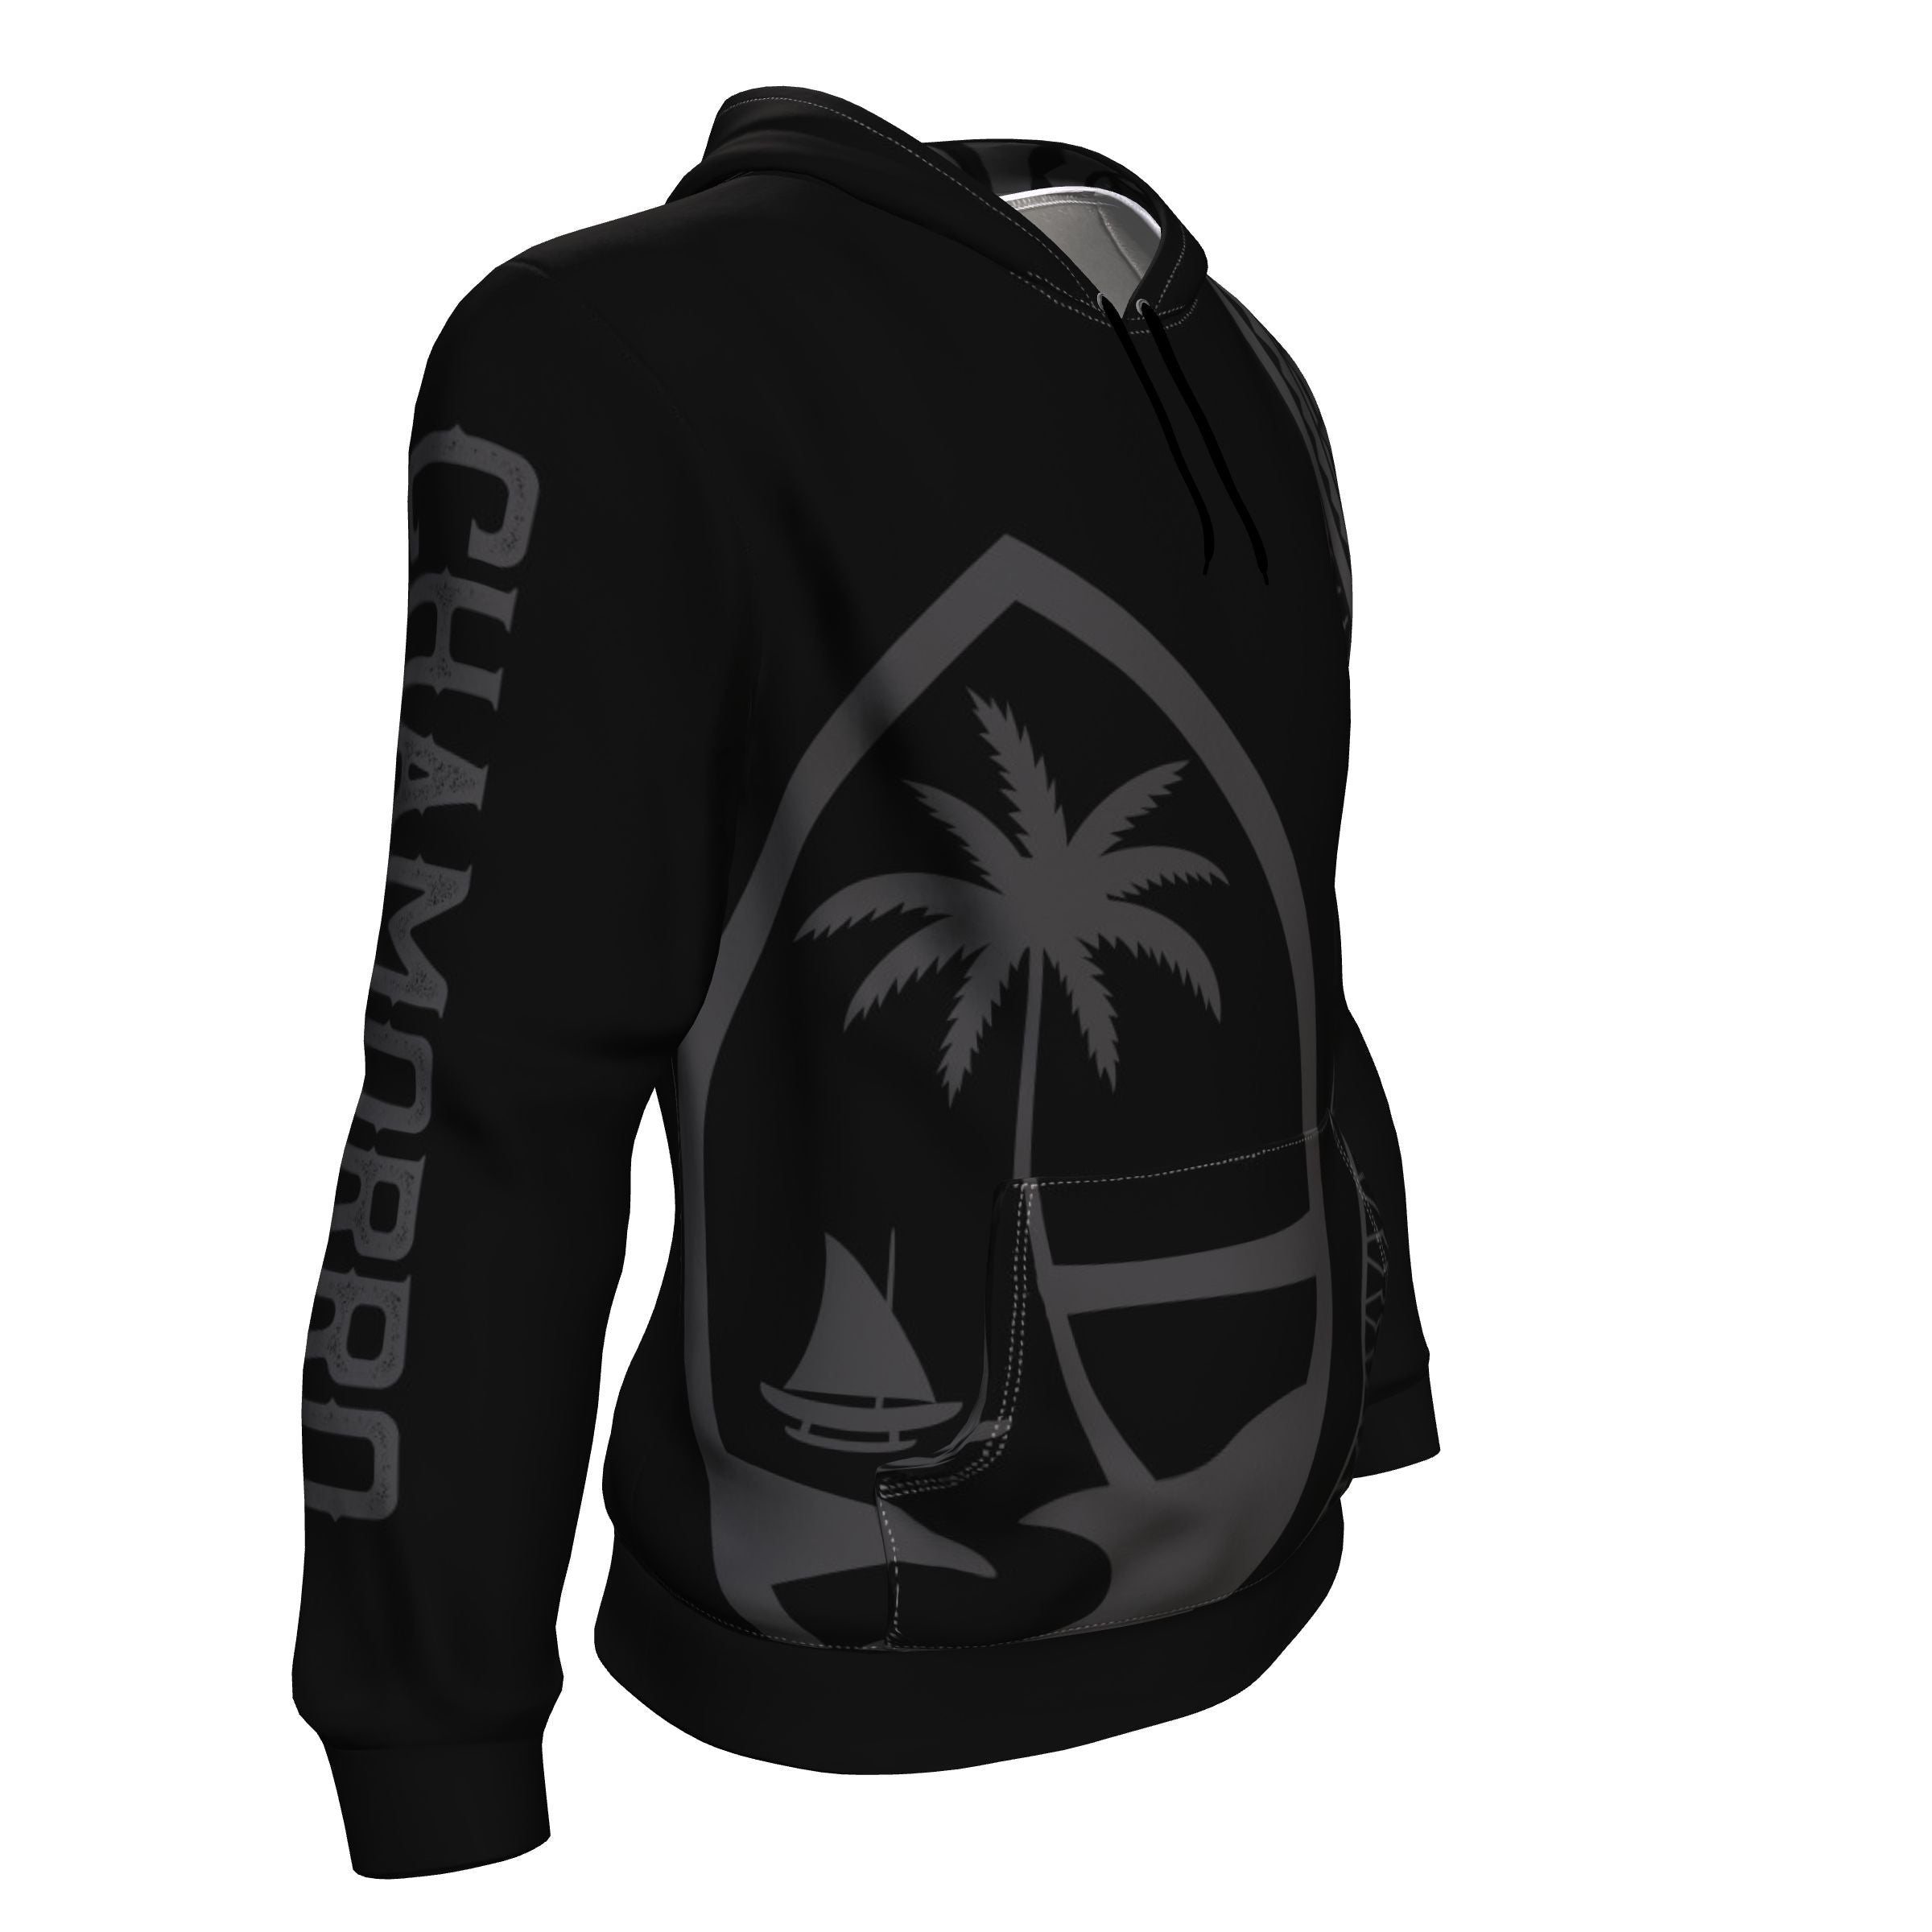 Tribal CHAMORRO Guam Seal All Over Black Pullover Hoodie